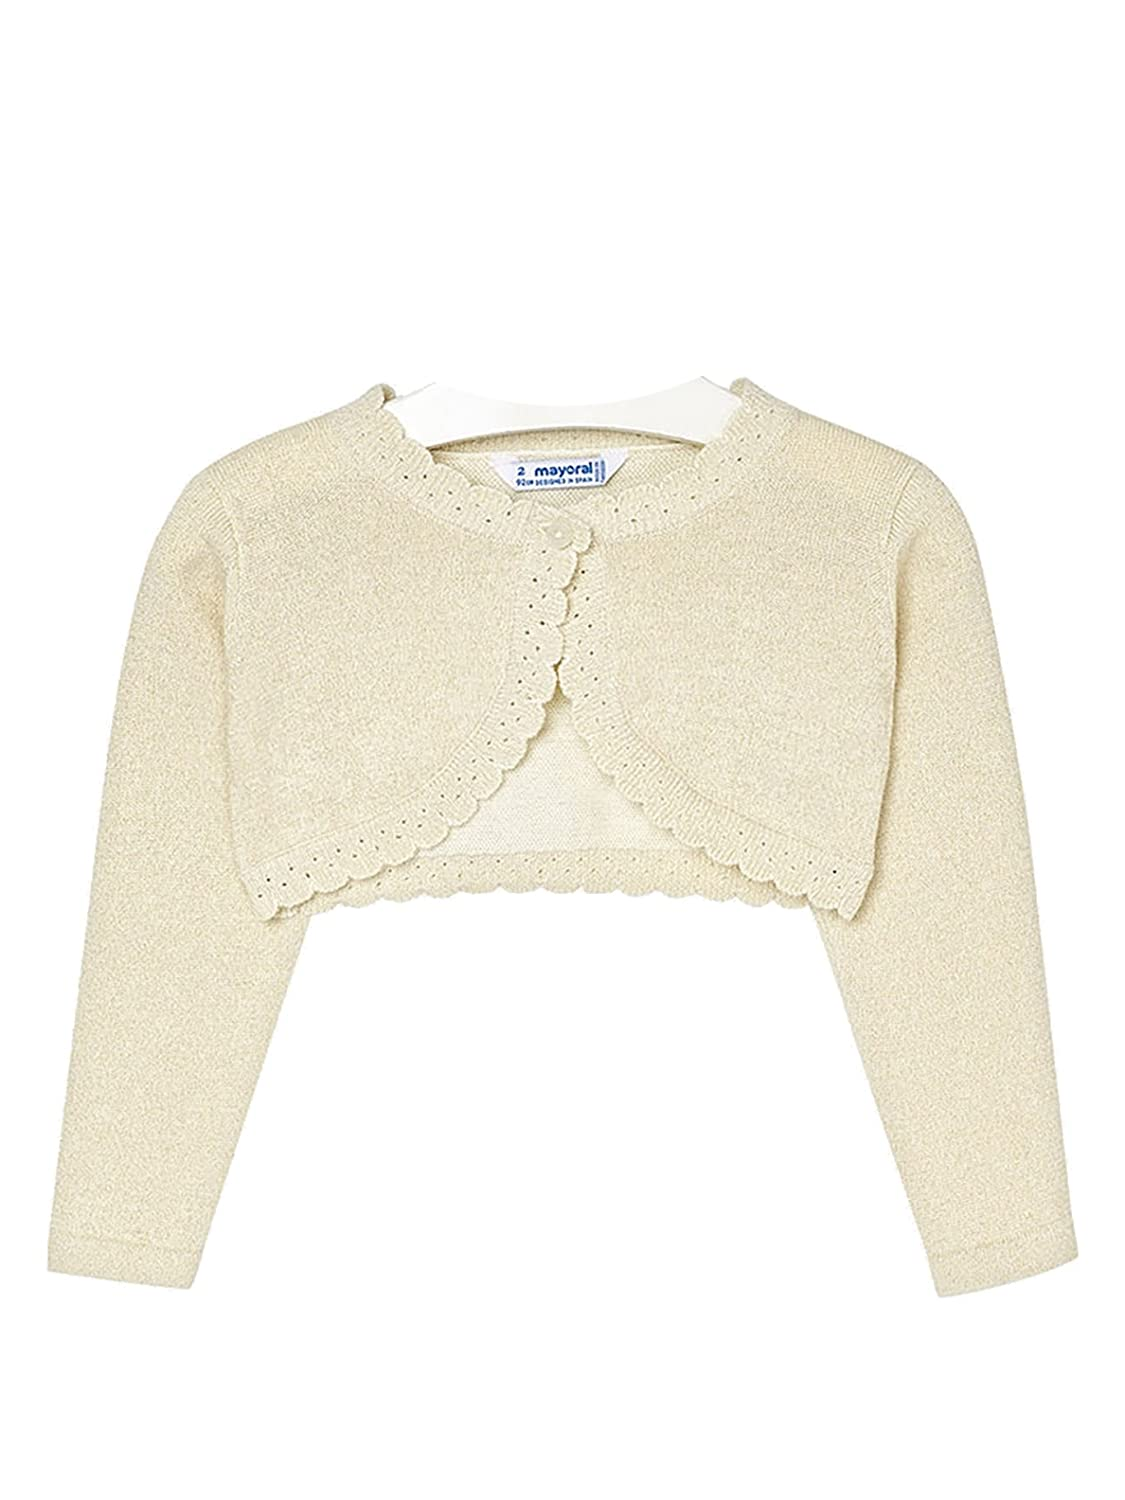 0314 Basic Knitted Cardigan for Girls Mayoral Champagne